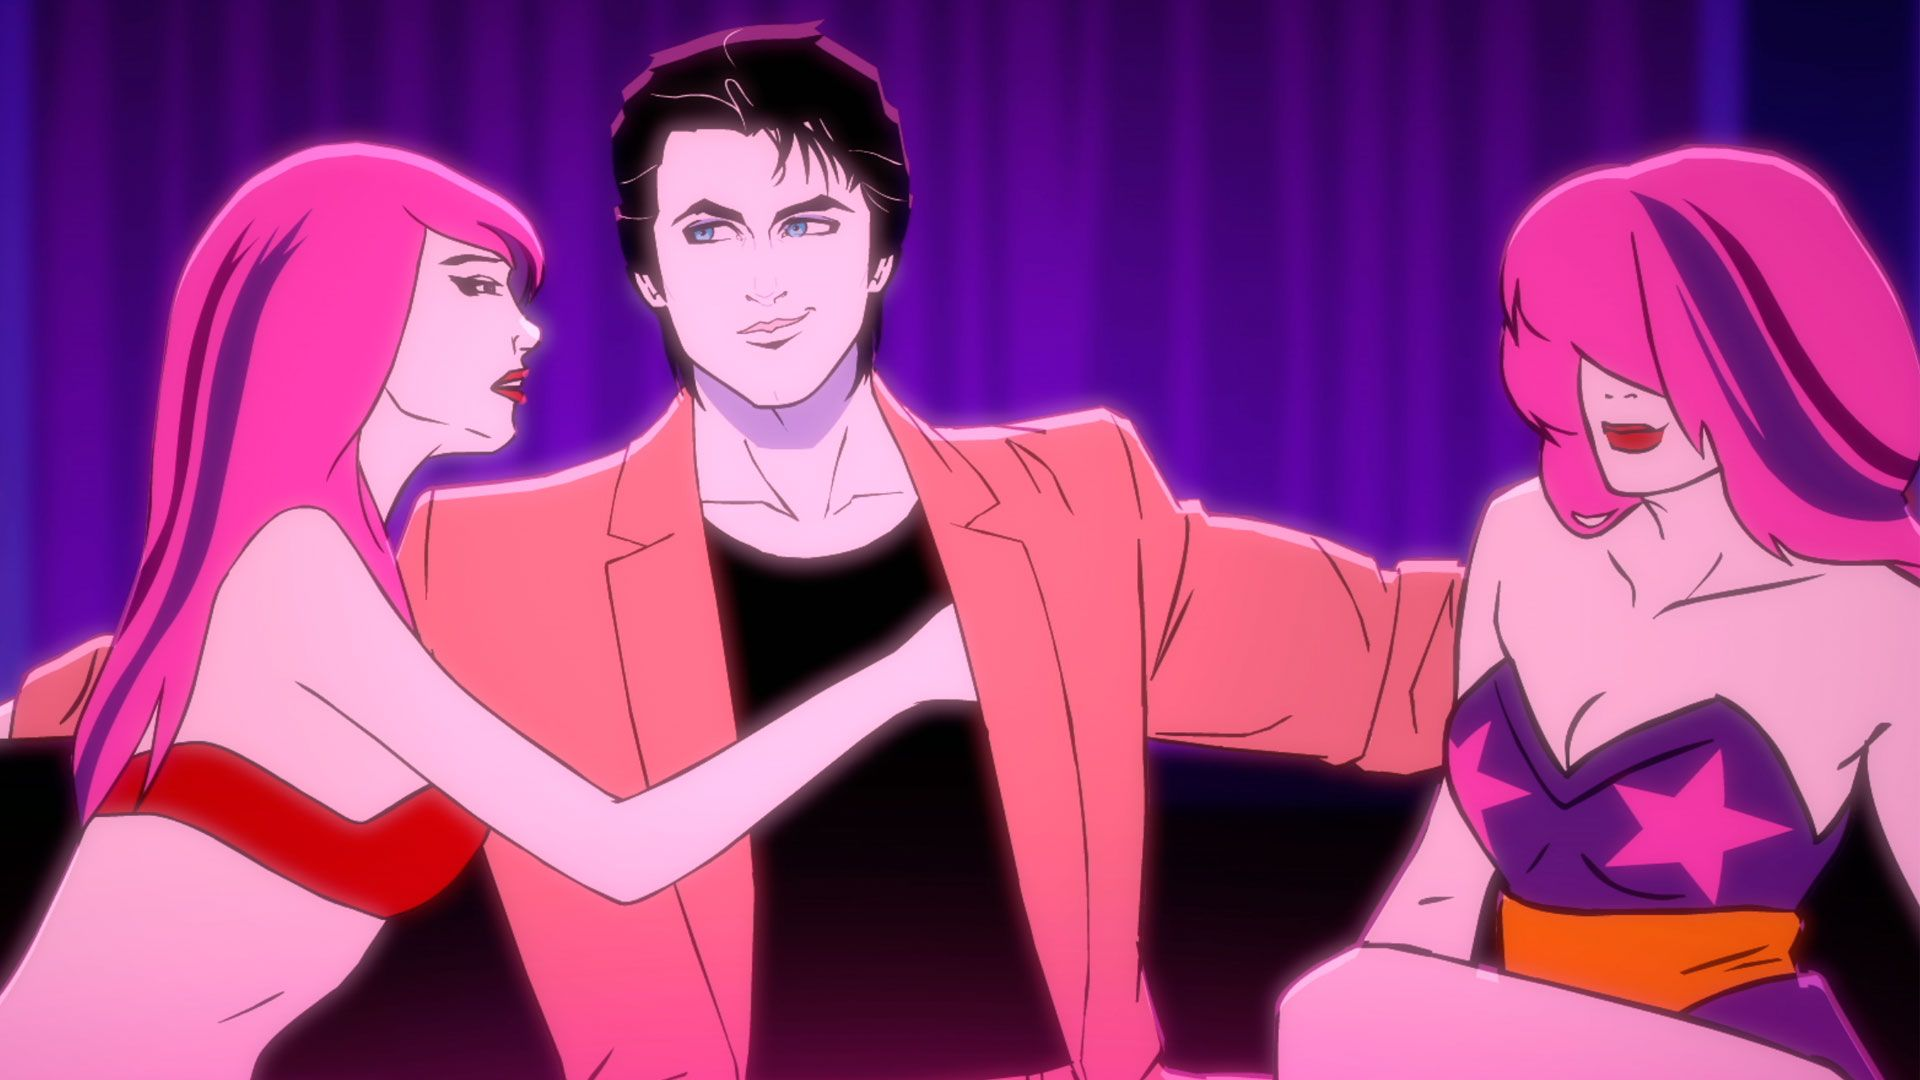 Moonbeam City   Season 1  Ep  1   Mall Hath No Fury   Full Episode     Moonbeam City   Season 1  Ep  1   Mall Hath No Fury   Full Episode   Comedy  Central